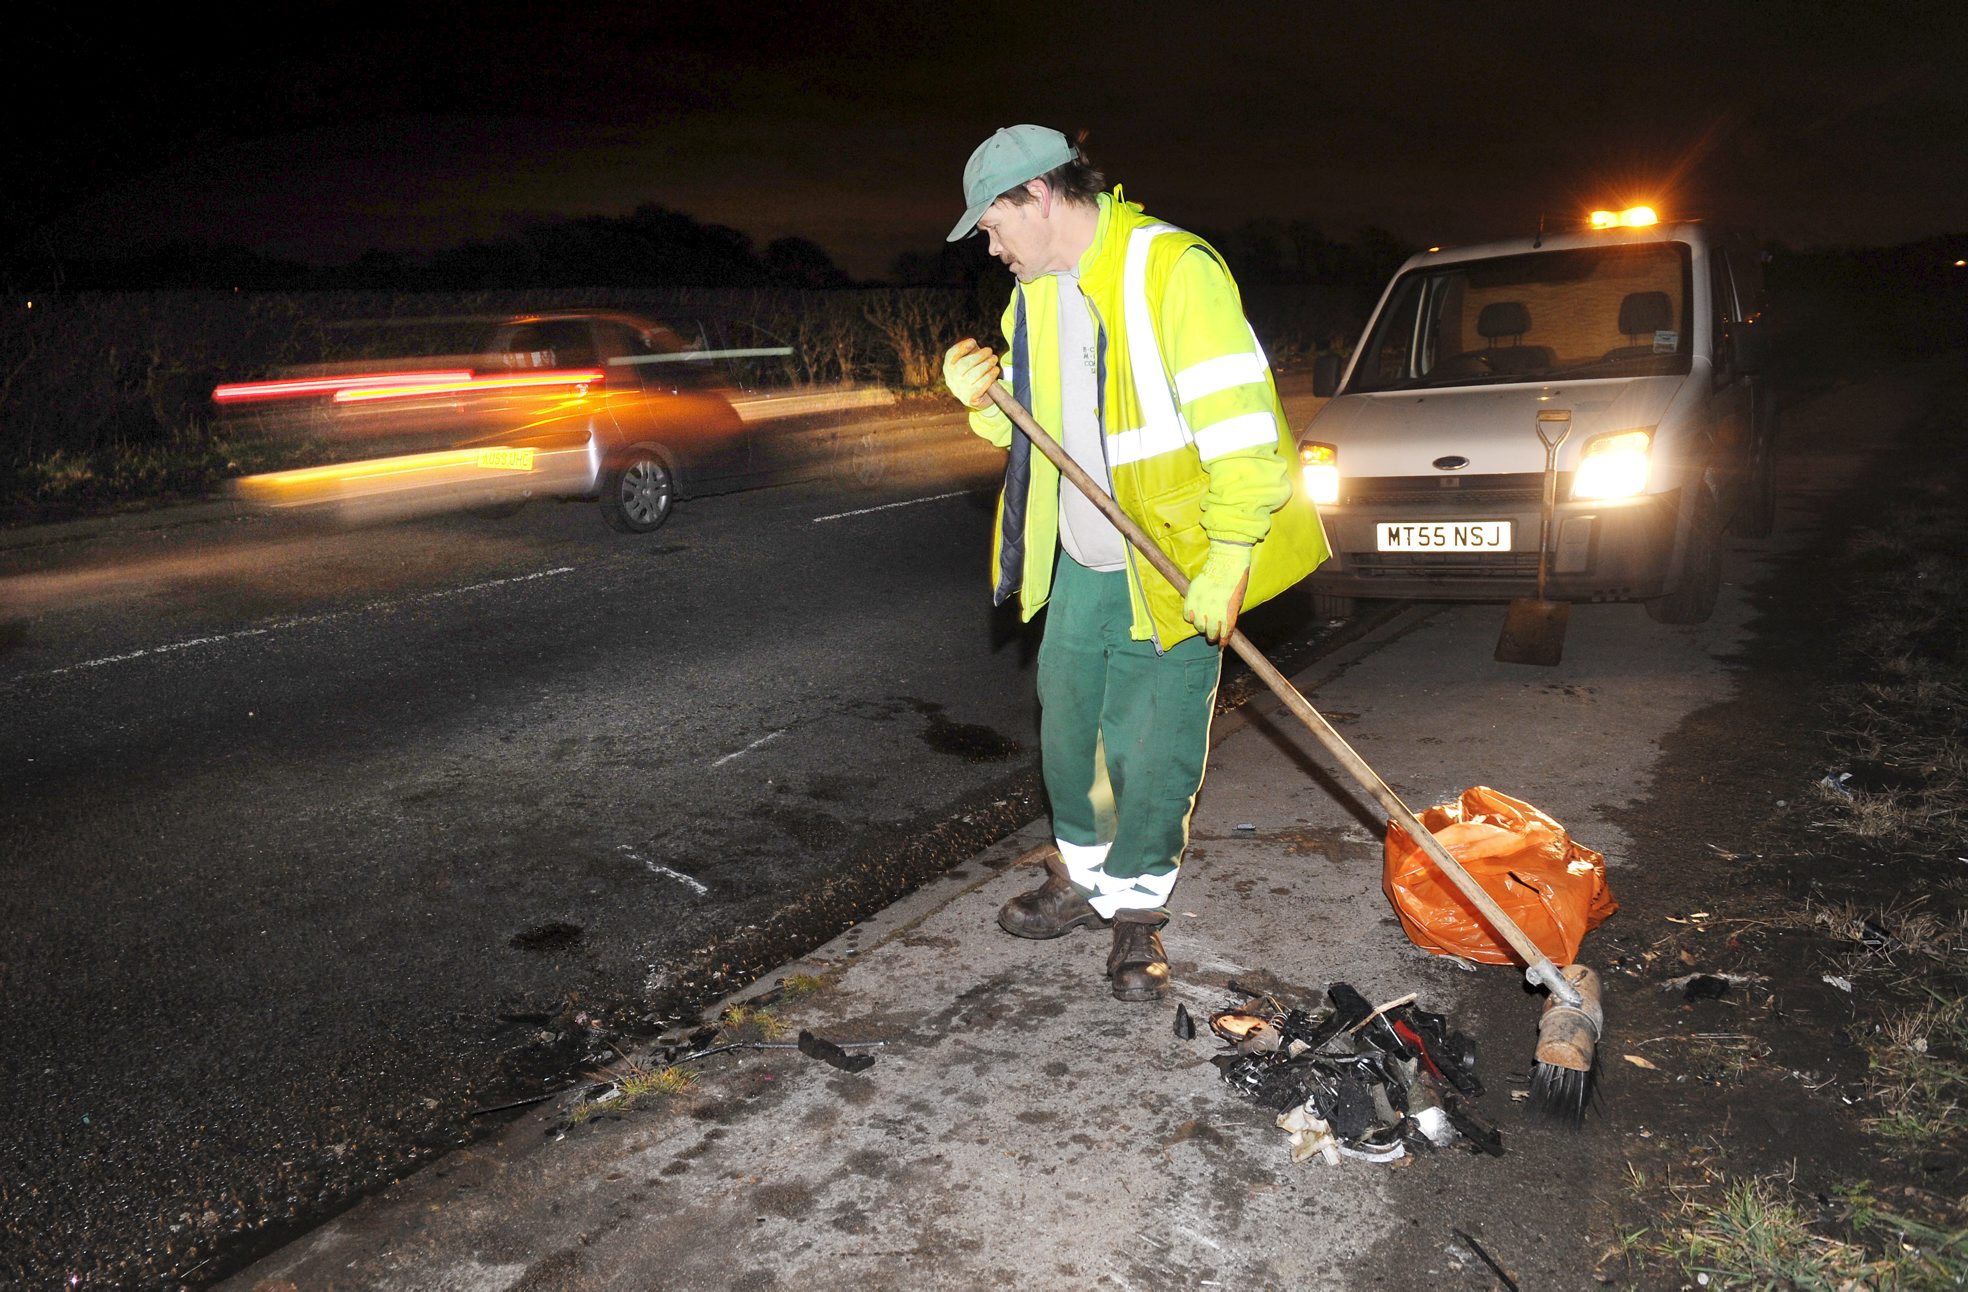 A worker cleans up after the crash on the A6 in Blackrod